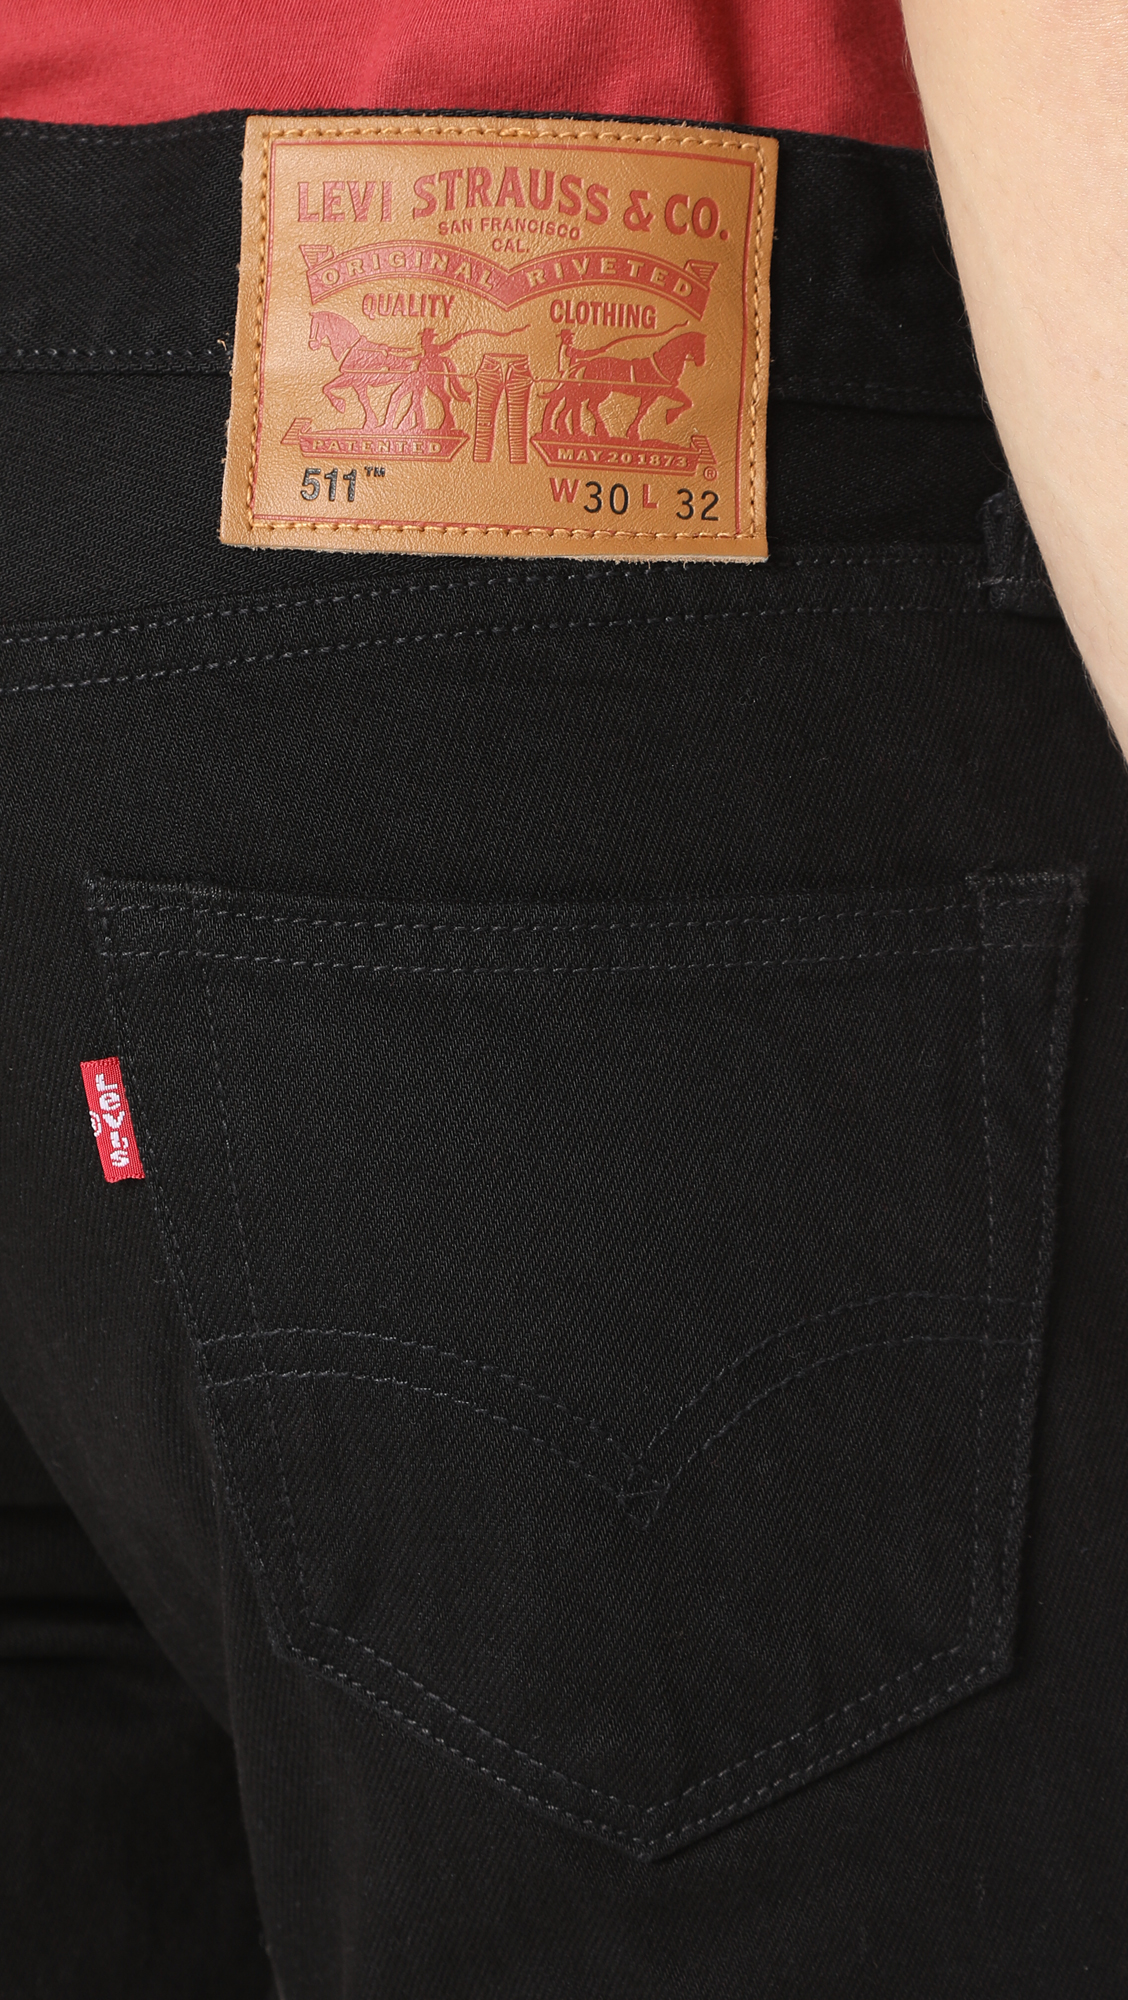 077326631c4a83 Levi's 511 Made in the USA Slim Fit Jeans | EAST DANE